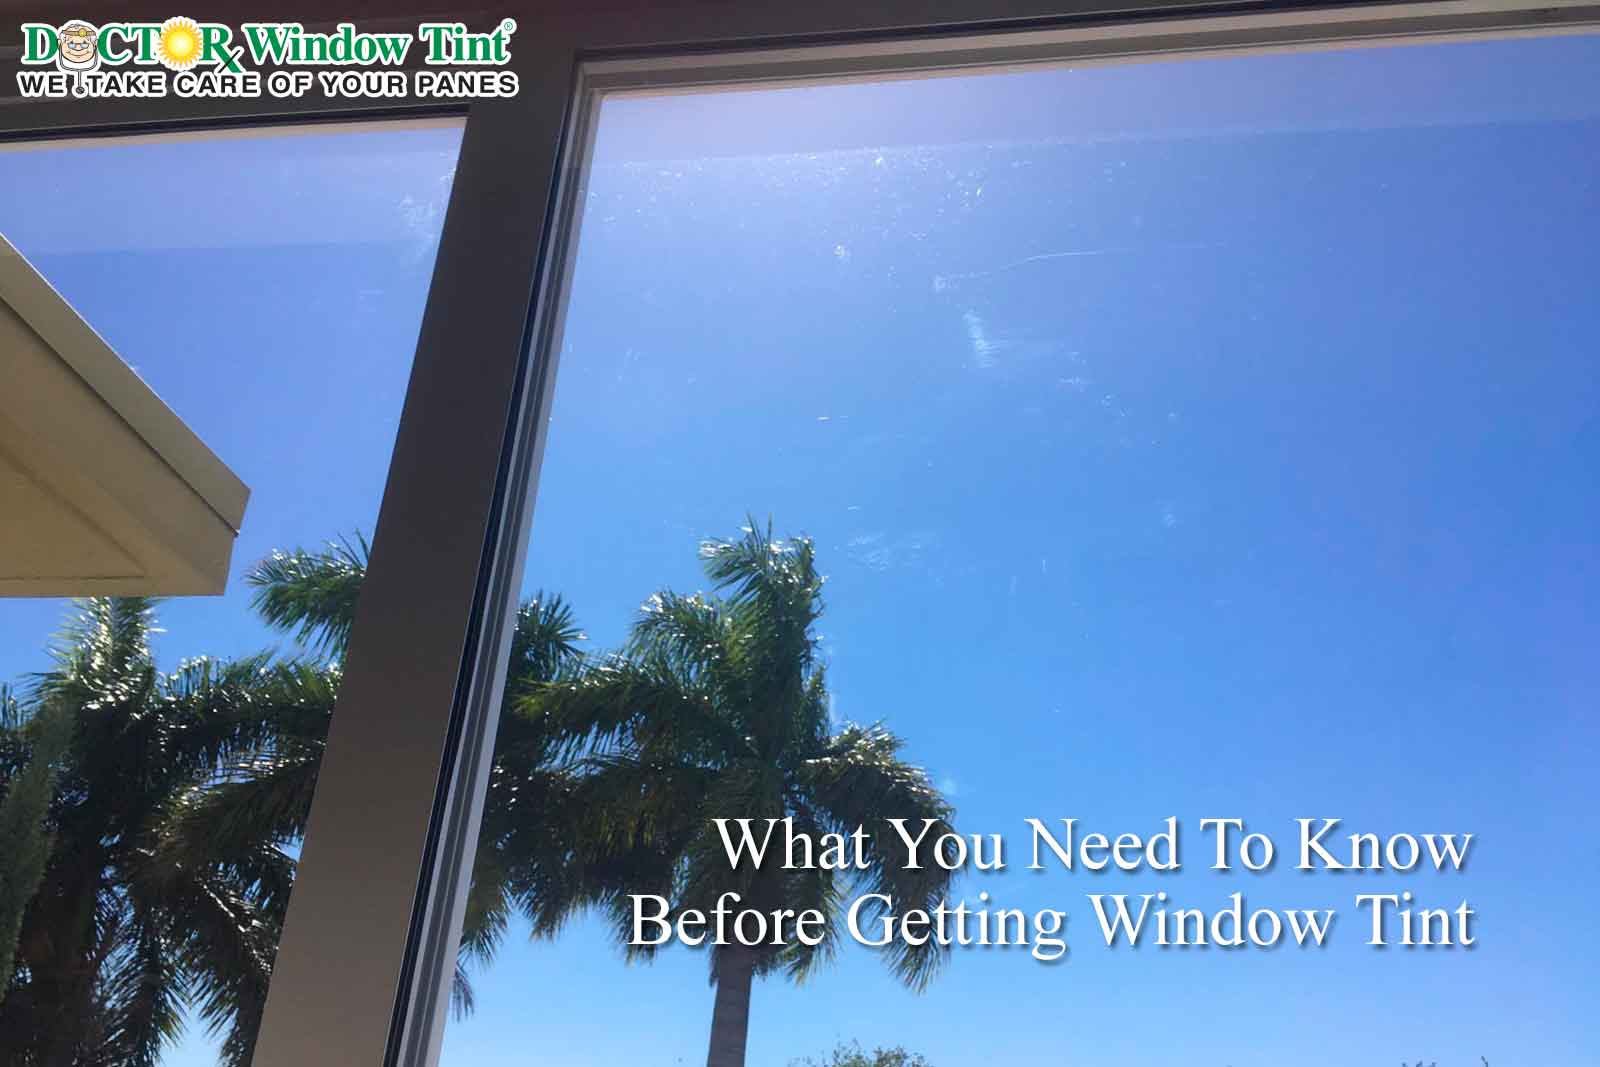 What You Need To Know Before Getting Window Tint